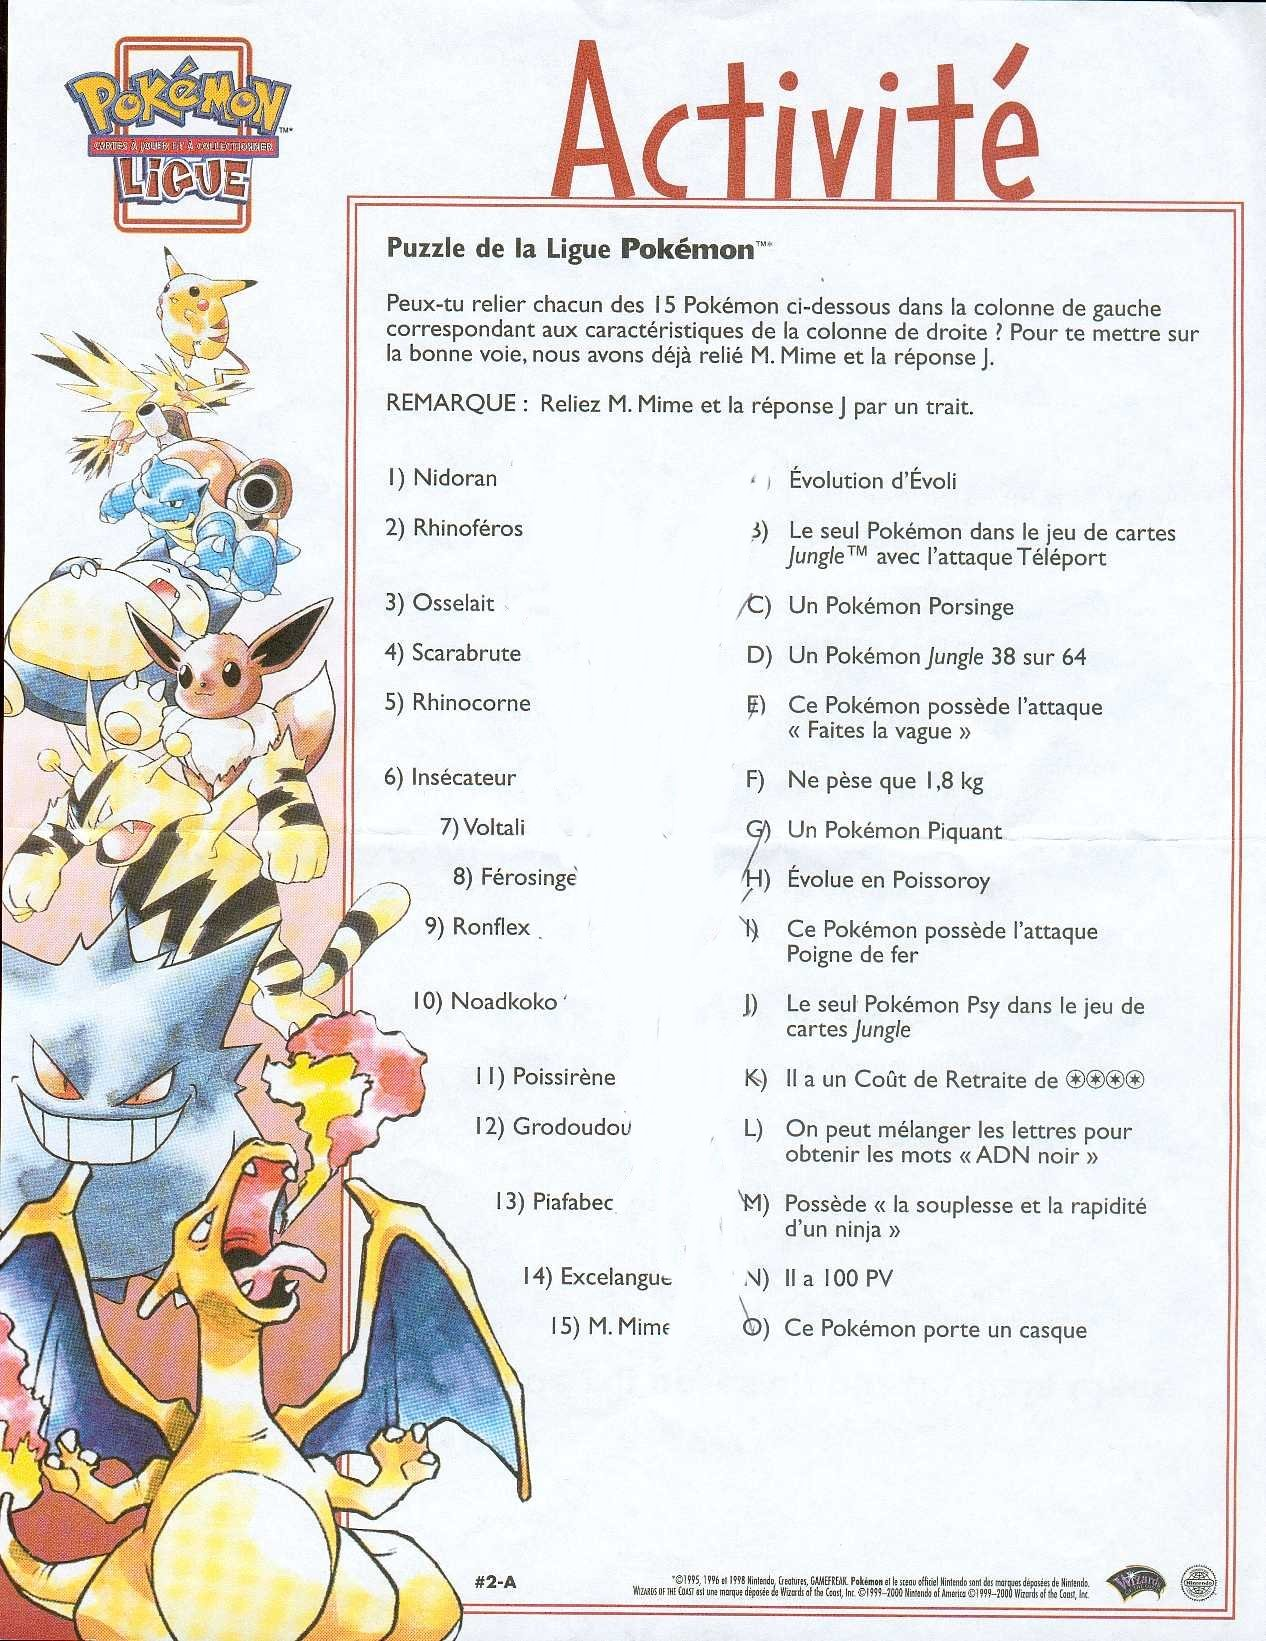 POKEMON TCG RULES EBOOK DOWNLOAD